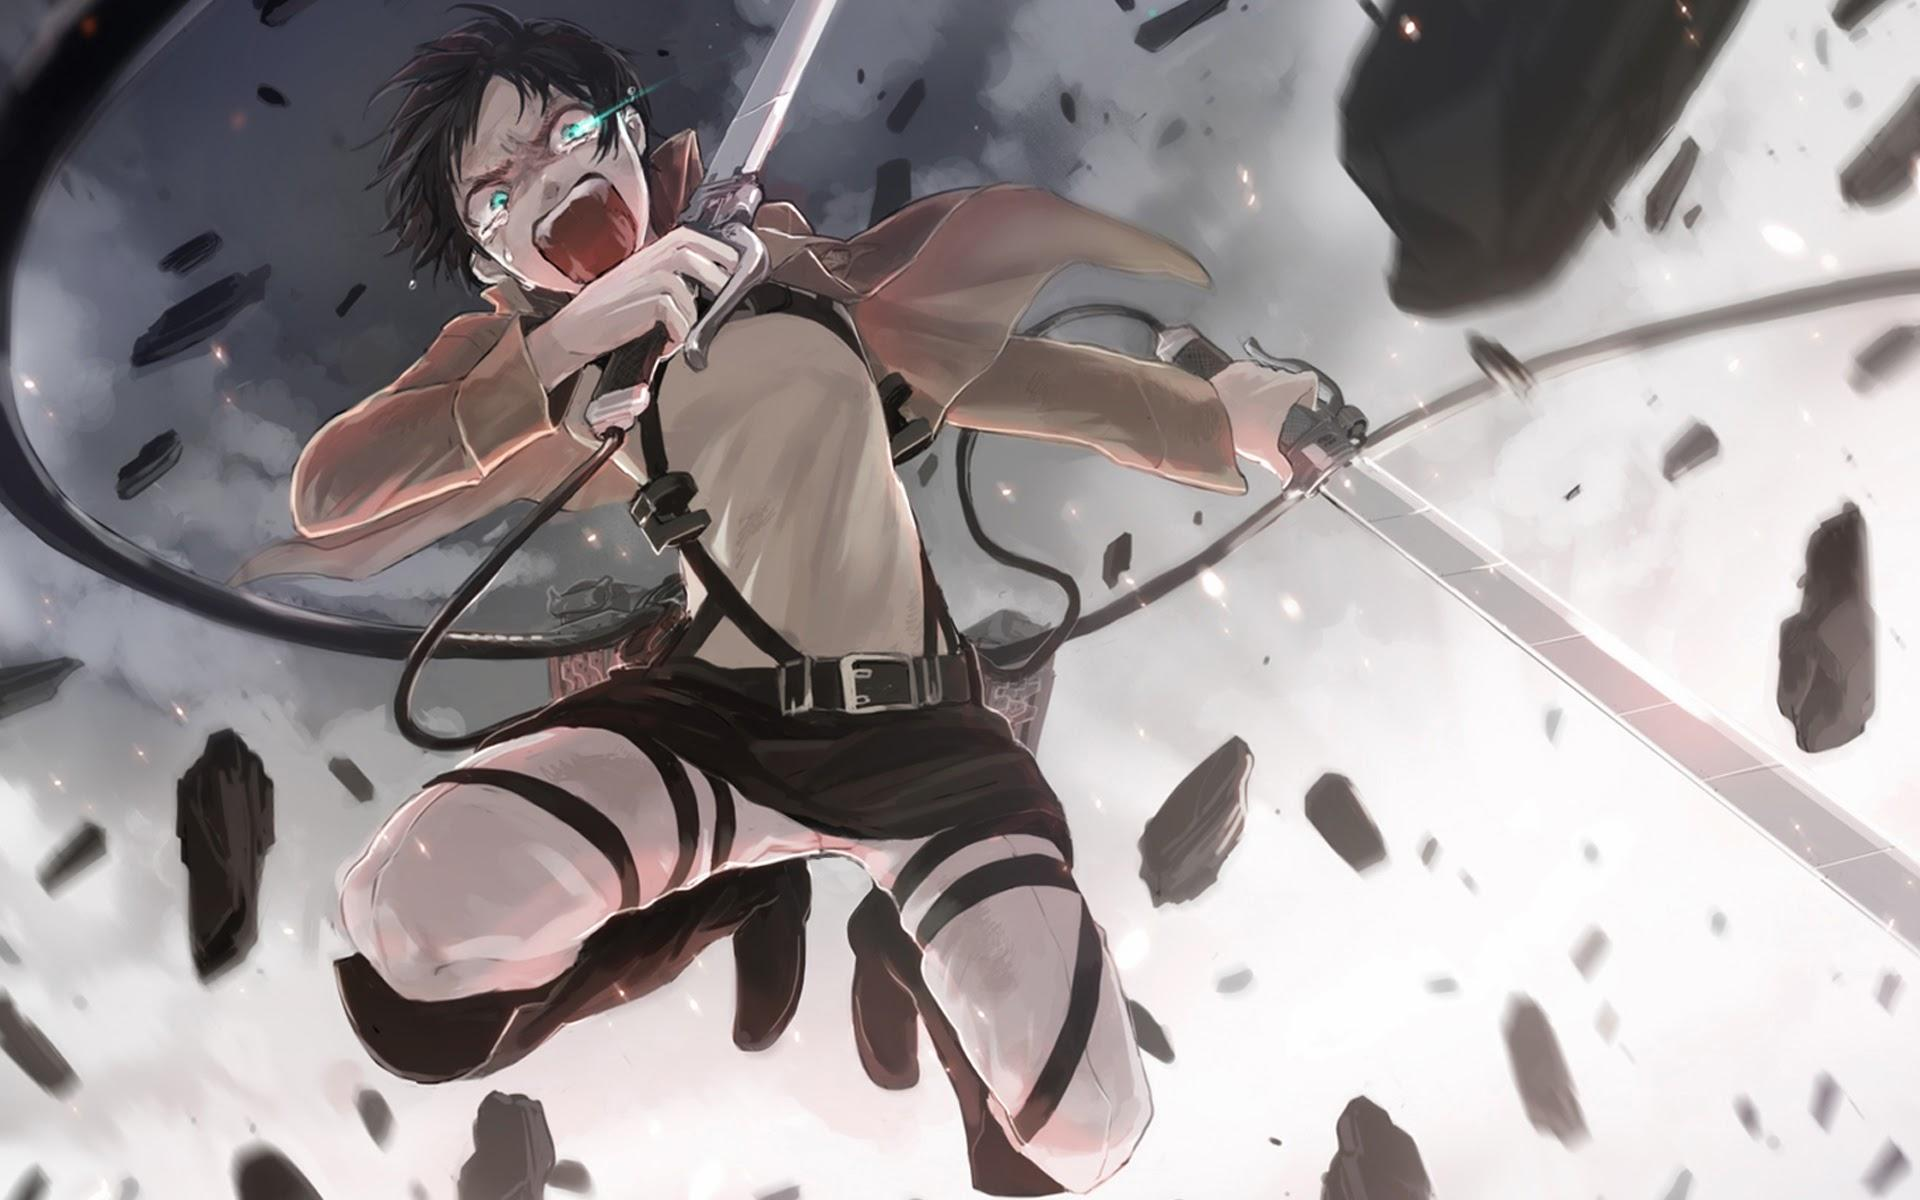 49+] Attack on Titan Wallpapers Eren